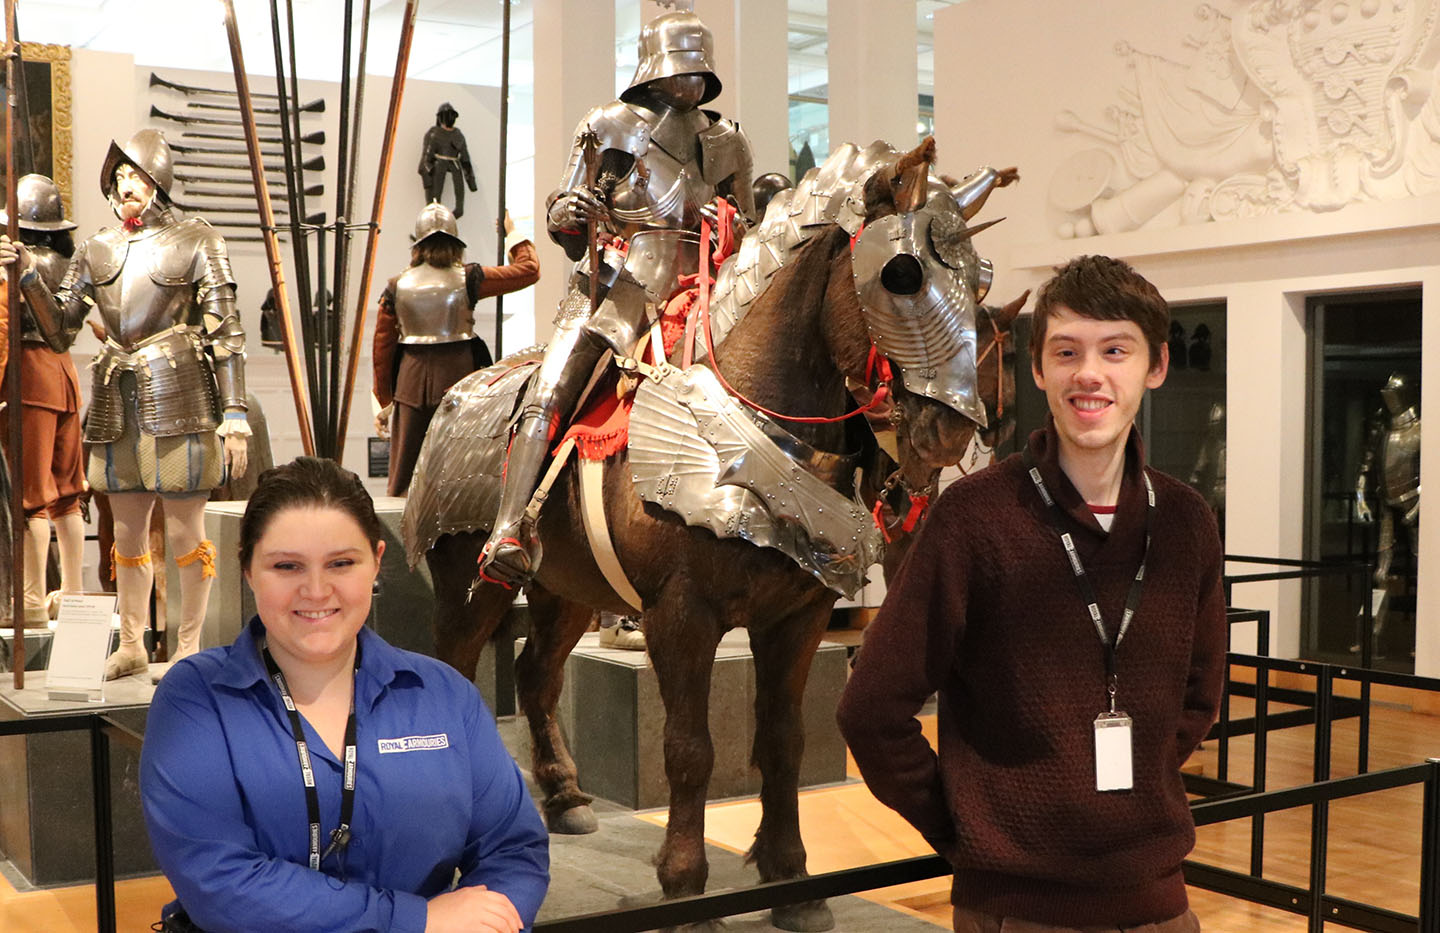 Museum assistants Tom and Brittany stand in from of an armored horse and knight display